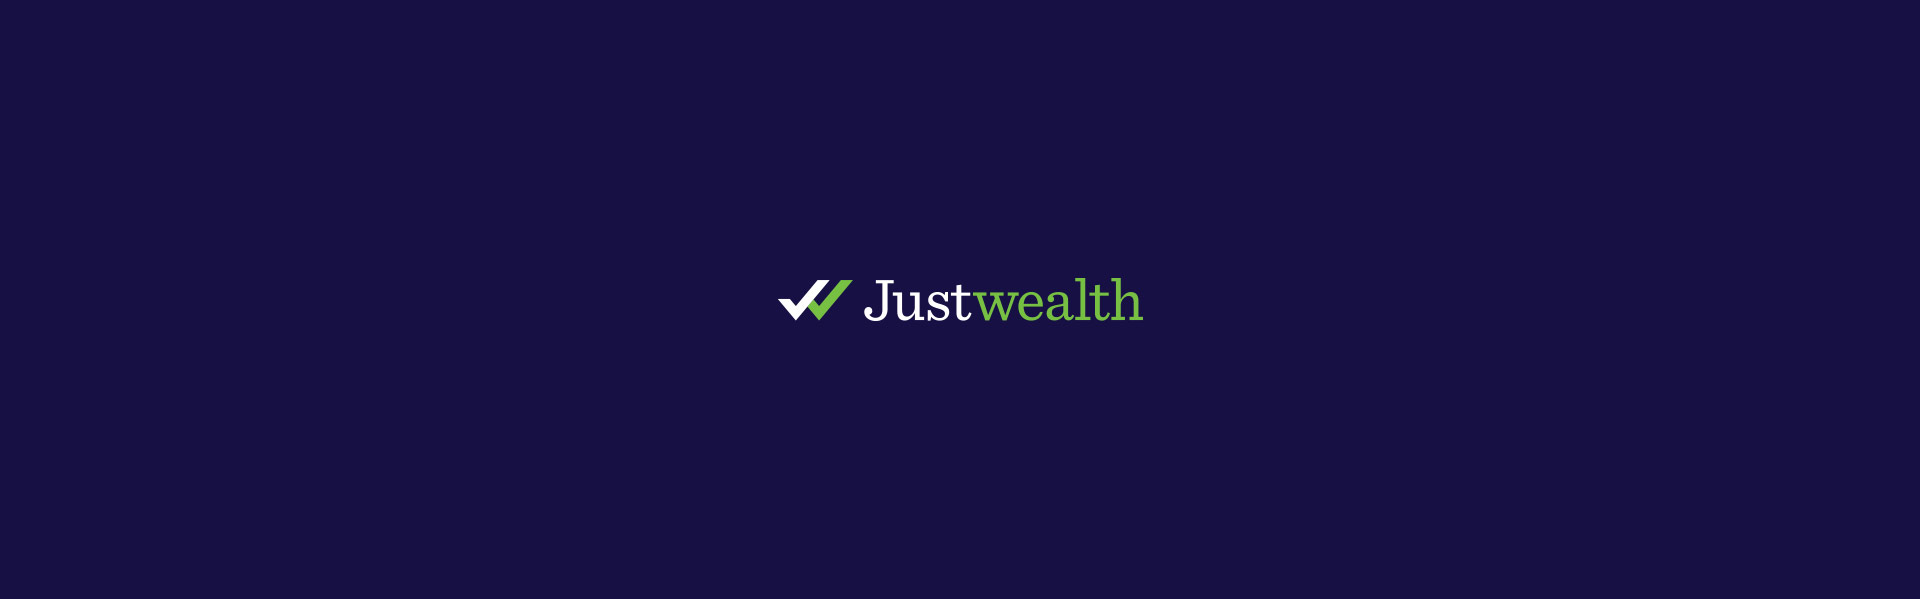 Justwealth Logo Design